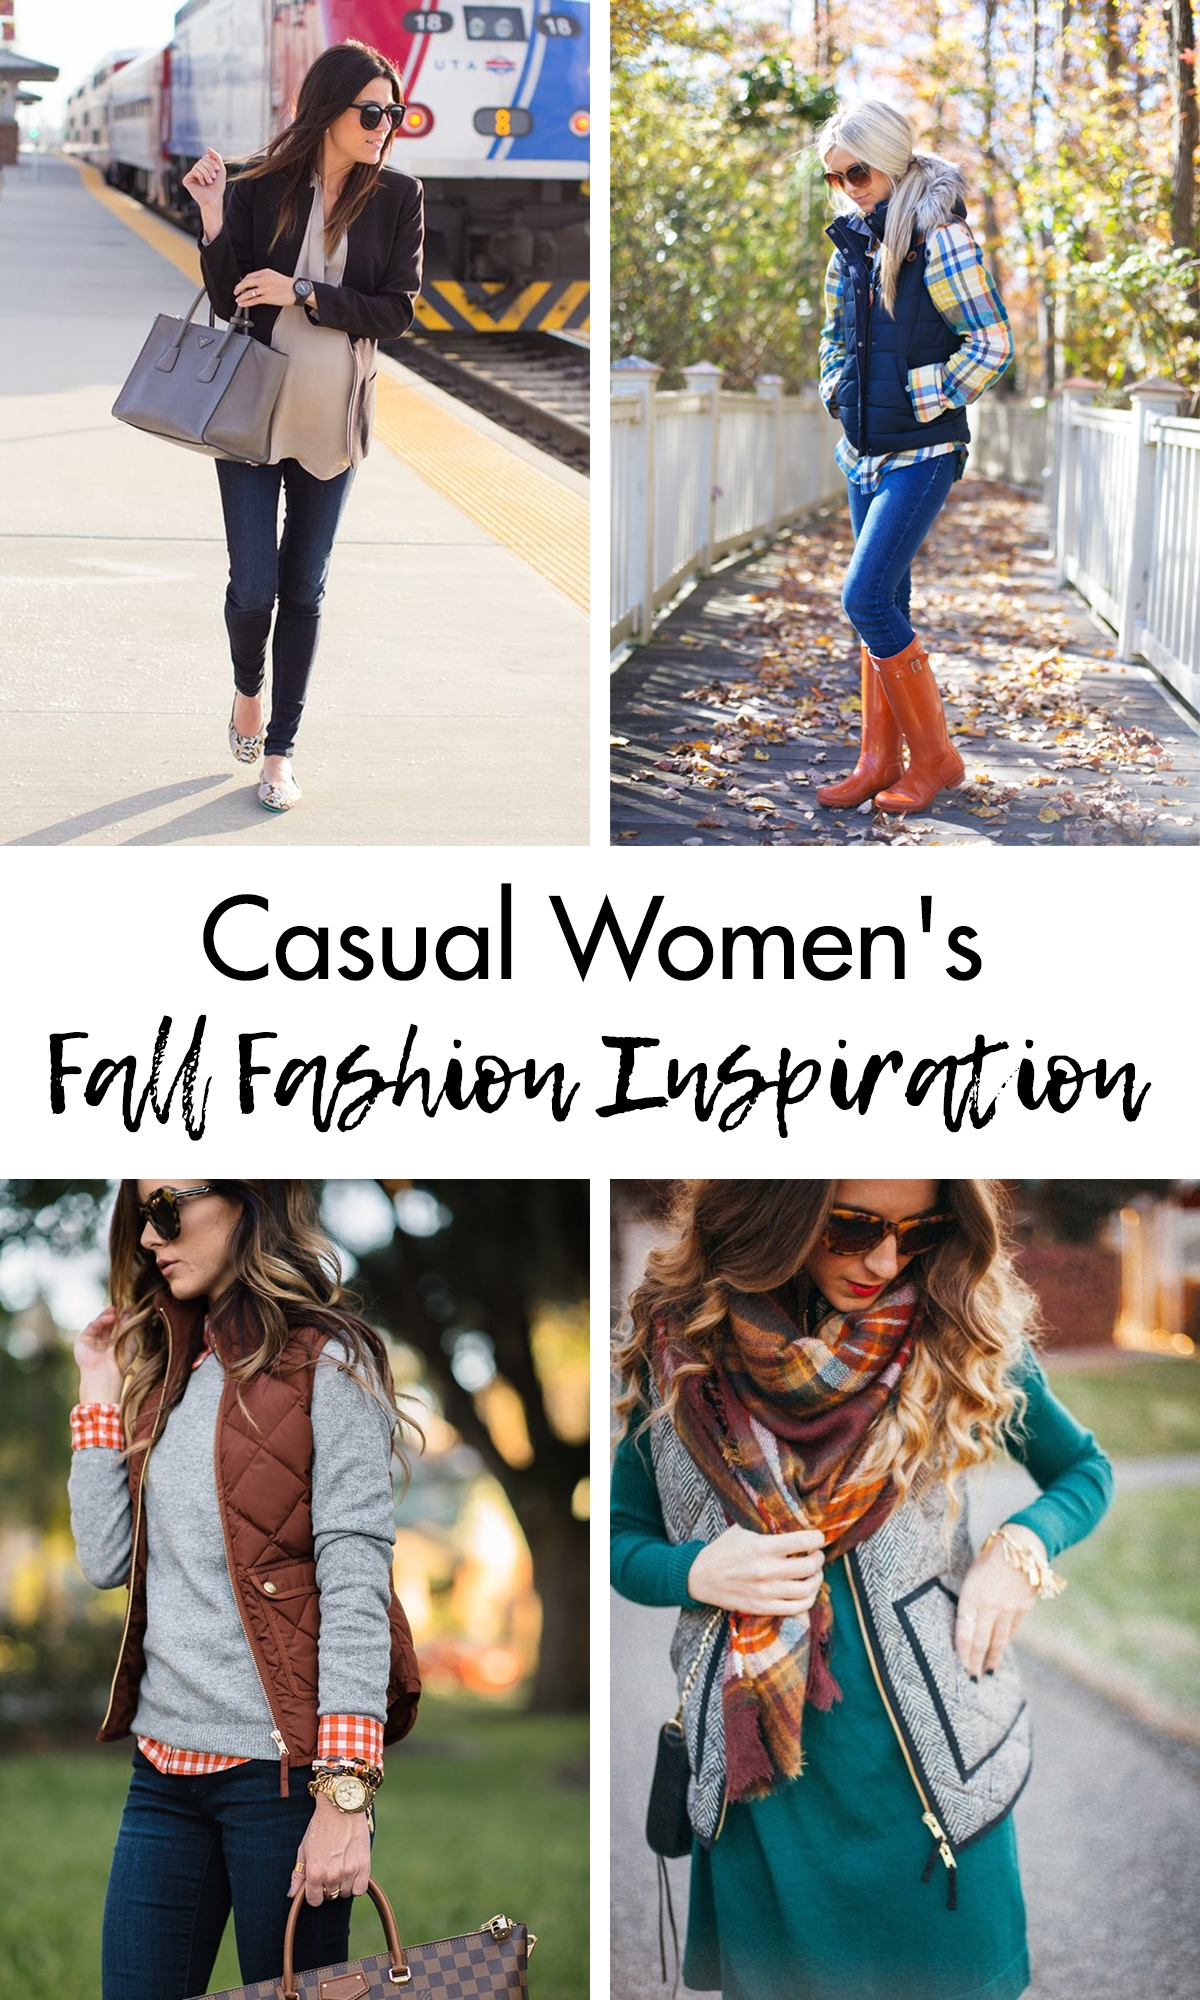 Casual Women's Fall Fashion Inspiration